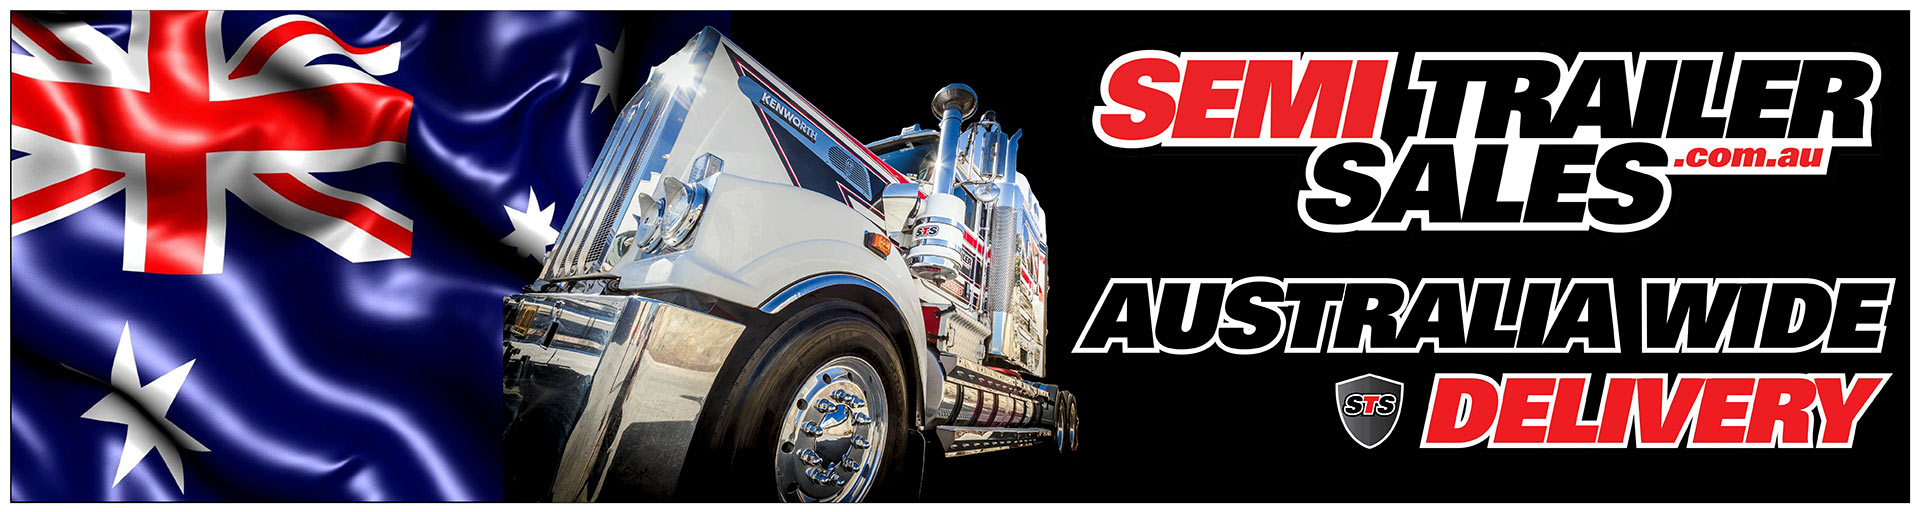 Semi Trailer Sales - Aus Wide